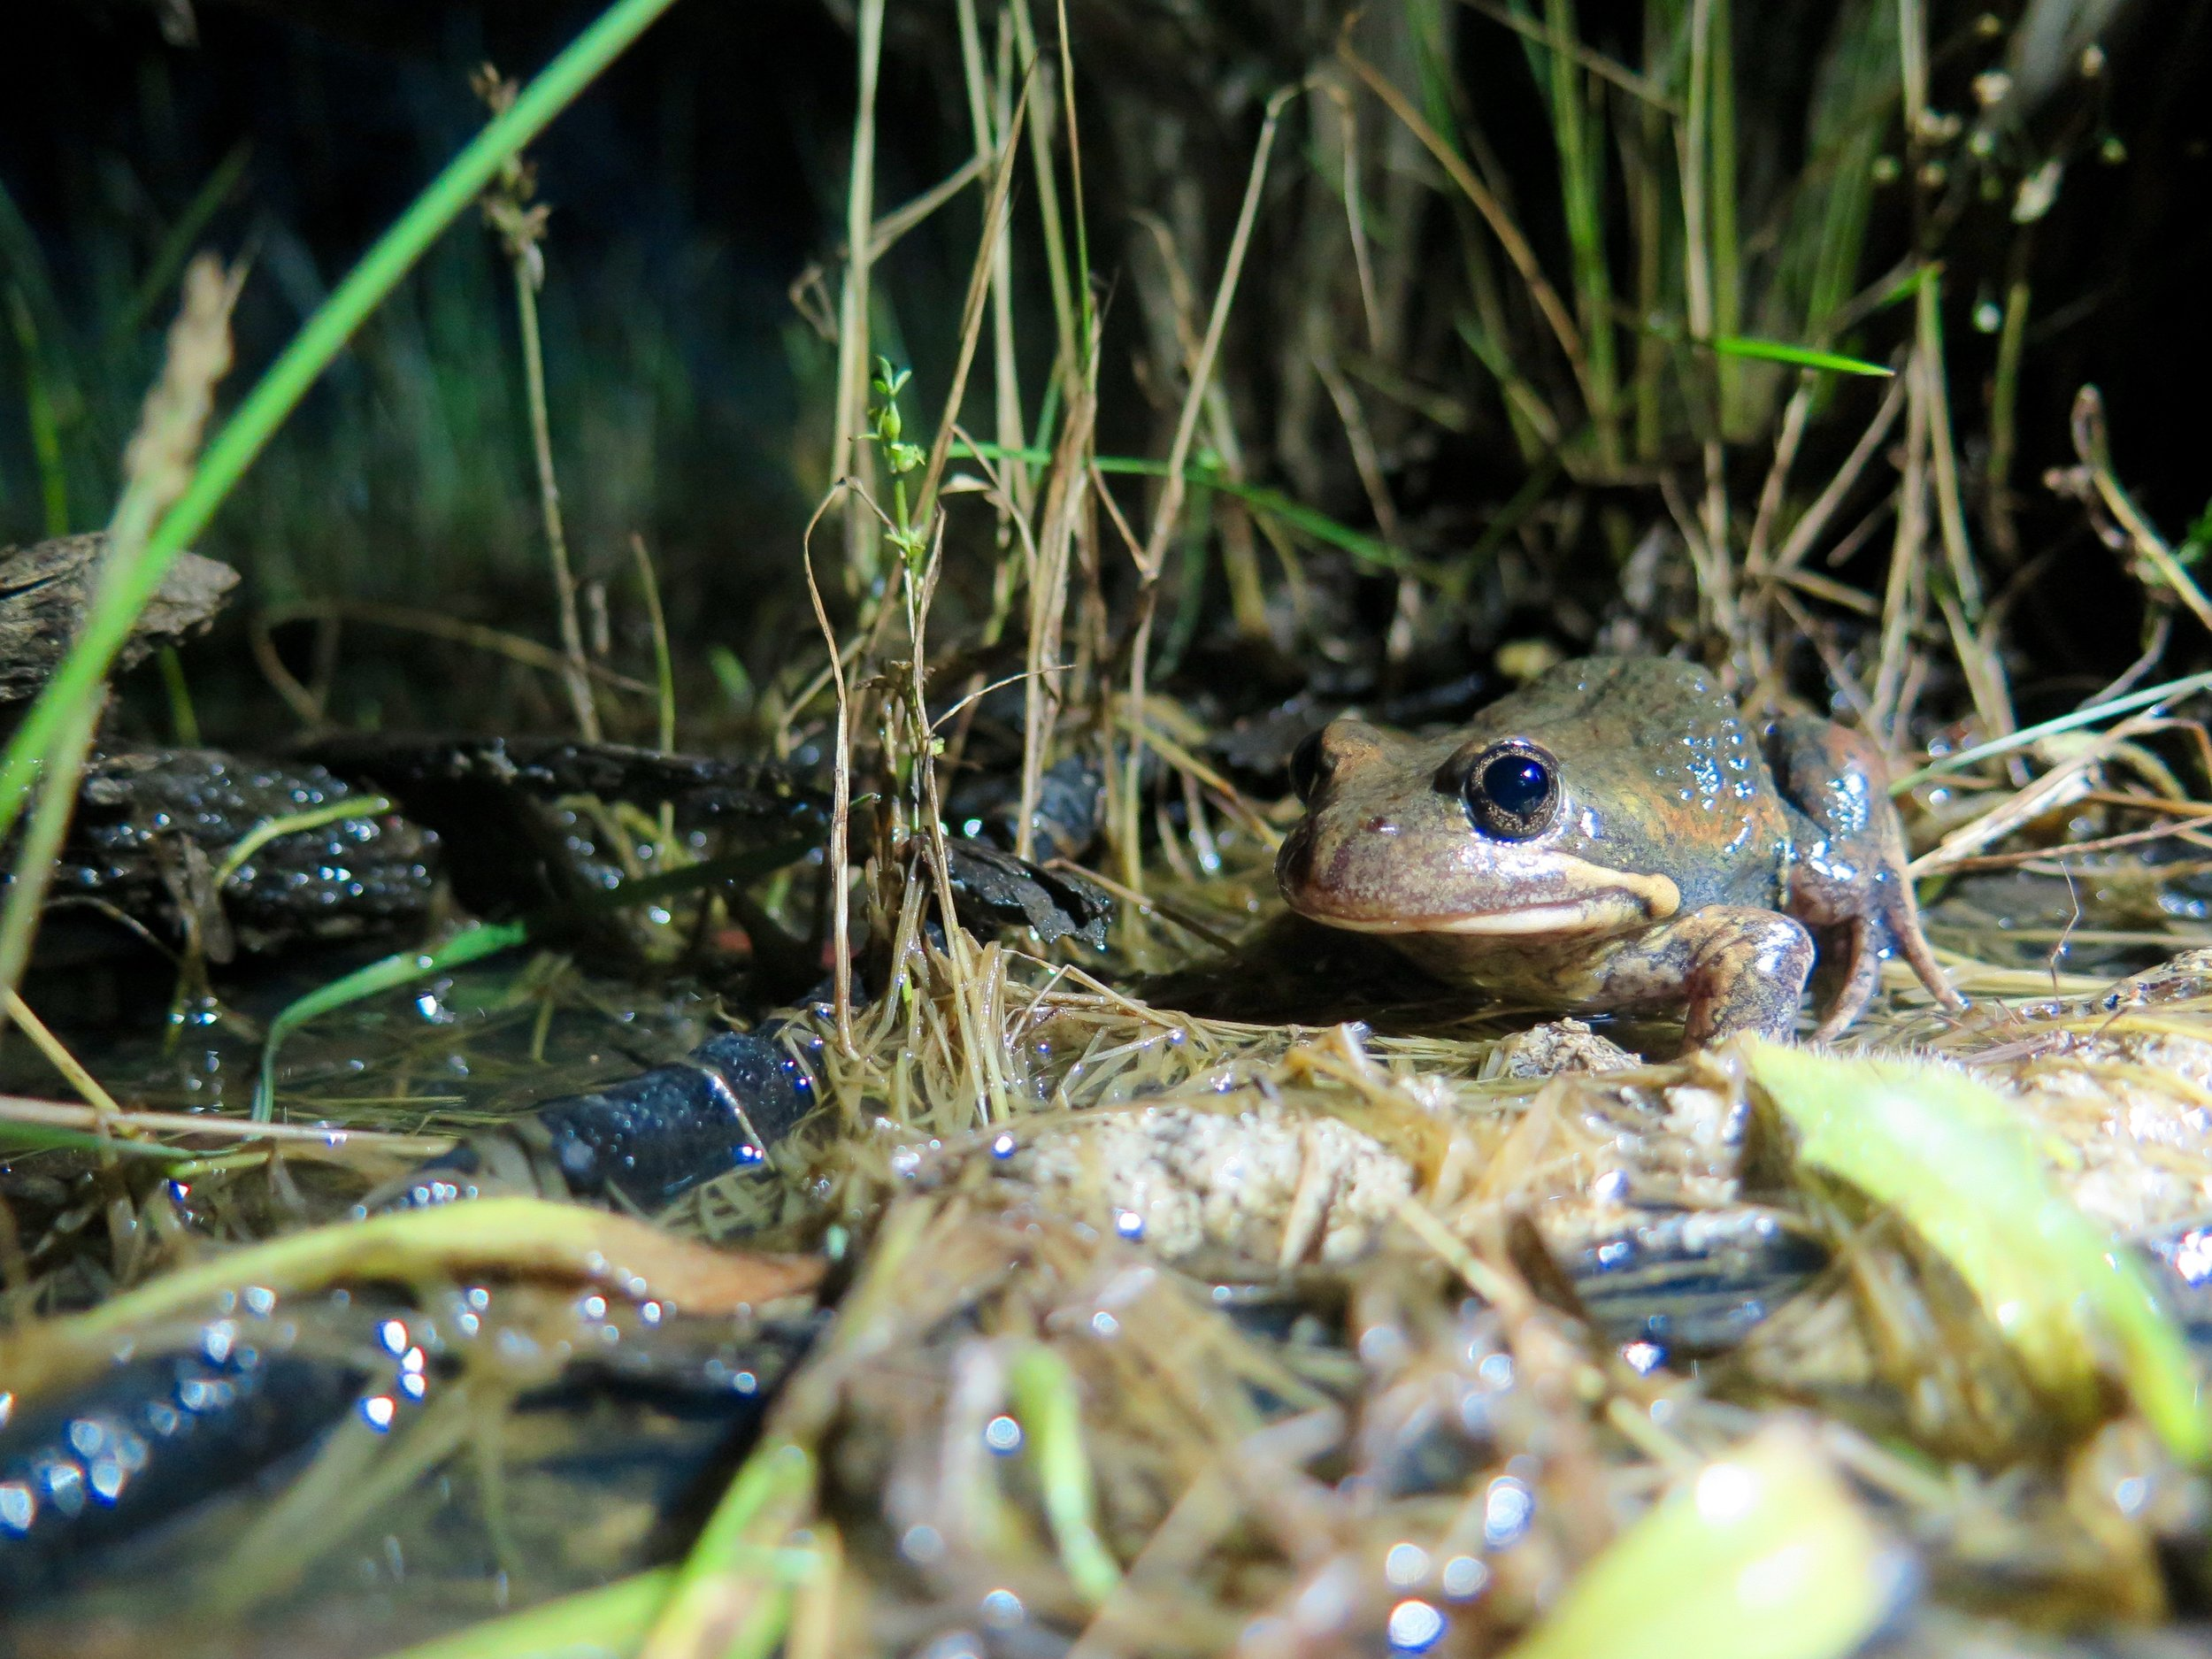 The Eastern Banjo Frog is also known as the Pobblebonk and can call all year round.  Image: Cathy Cavallo